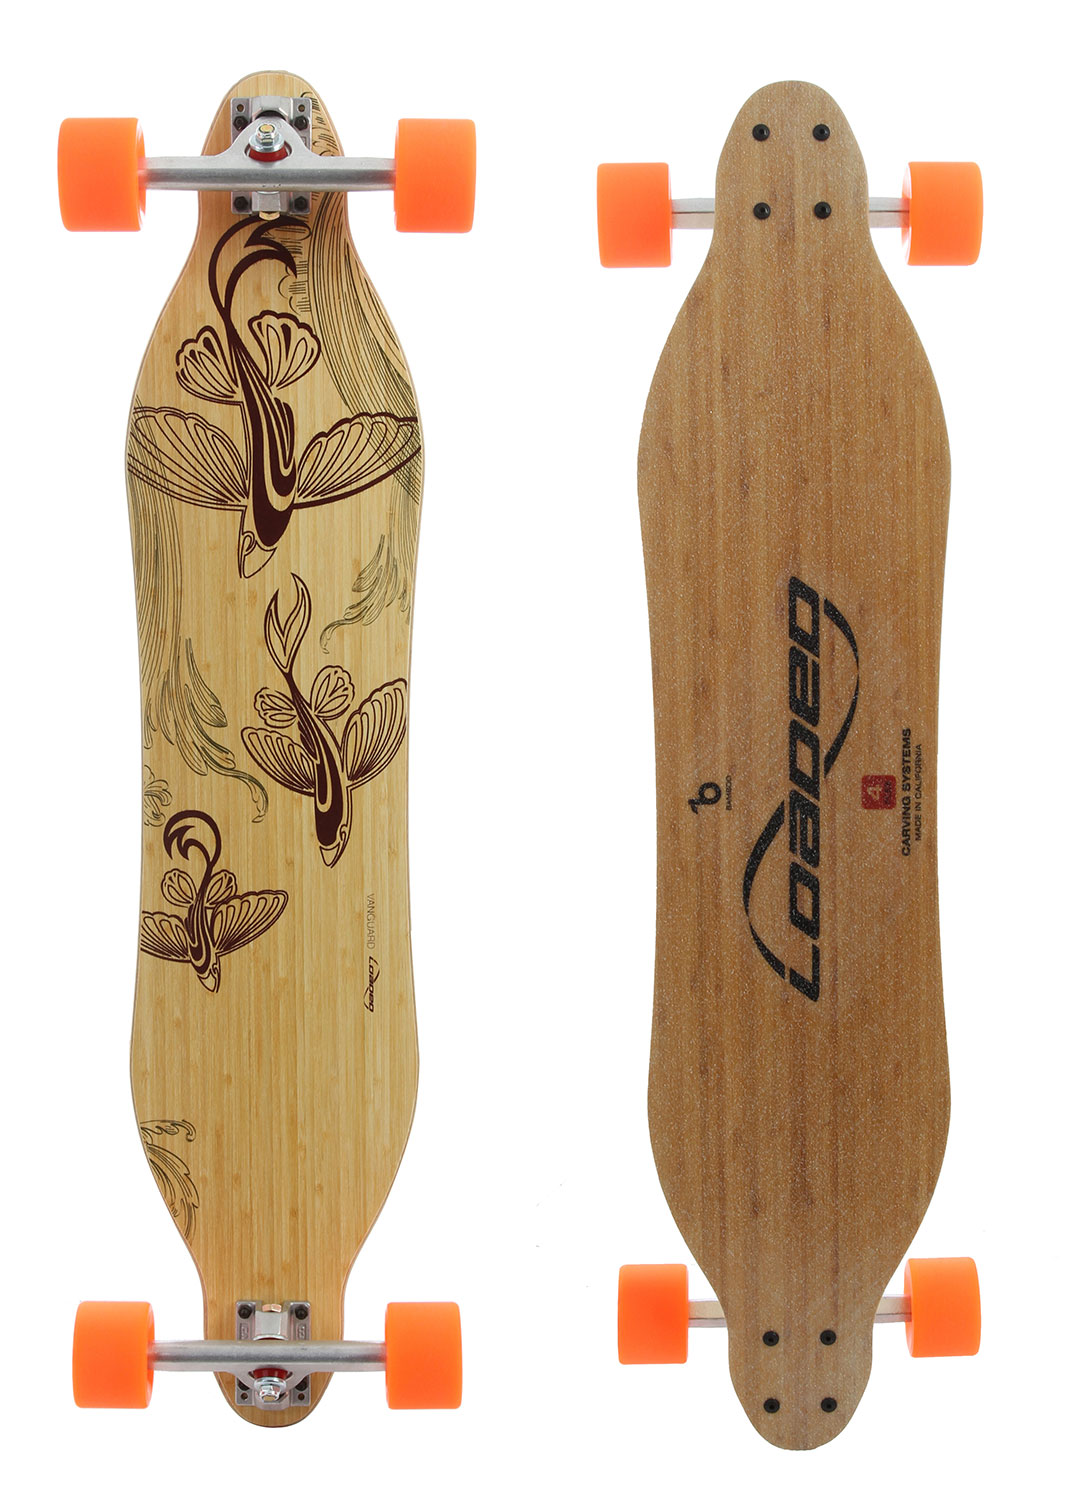 "Skateboard The one that started it all. Symmetrical shape and stance for a balanced center of gravity to increase the ability to weight the deck through turns for better control and energy generation. The sidecuts allow for decreased torsional stiffness between the feet to exploit the board's torsional energy to allow for greater nuances in the turning radius. The Vanguard was designed and intended for speeds between 0 and 25 mph (0-40km/hr). You can take the board faster with skill and experience, but it is not intended for higher speeds due to its flex characteristics.Flex 1: Up to 270 lbs // Flex 2: 130-210+ lbs // Flex 3: 80-170+ lbs Keep in mind that a softer flex pattern will give you more control and tighter turns at slower speeds and make it easier to slide, but tends to lose stability slightly at higher speeds. Stiffer flex means more energy potential, more stability at higher speeds, and better longevity through abusive tricks and aerial landings, but will not be as forgiving and lively when cruising. The Flex 1 is considerably stiffer so as to be appropriate for heavier riders and hardpounding thrashers alike.Key Features of the Loaded Vanguard Flex 4 Longboard Complete: Length: 42""/107cm & 38""/98cm Width: 8.5""/21.5cm Wheelbase: 35""/88.9cm & 31.5""/80cm Weight: deck only: 2.7 - 3.8lbs / 1.2 - 1.7kg complete: 6.9 - 8lbs / 3.1 - 3.6kg Epoxy and Tri-axle fiberglass sandwich a vert-lam Bamboo core, pressed into concave and convex cambers for liveliness, responsiveness and high energy potential. - $311.00"